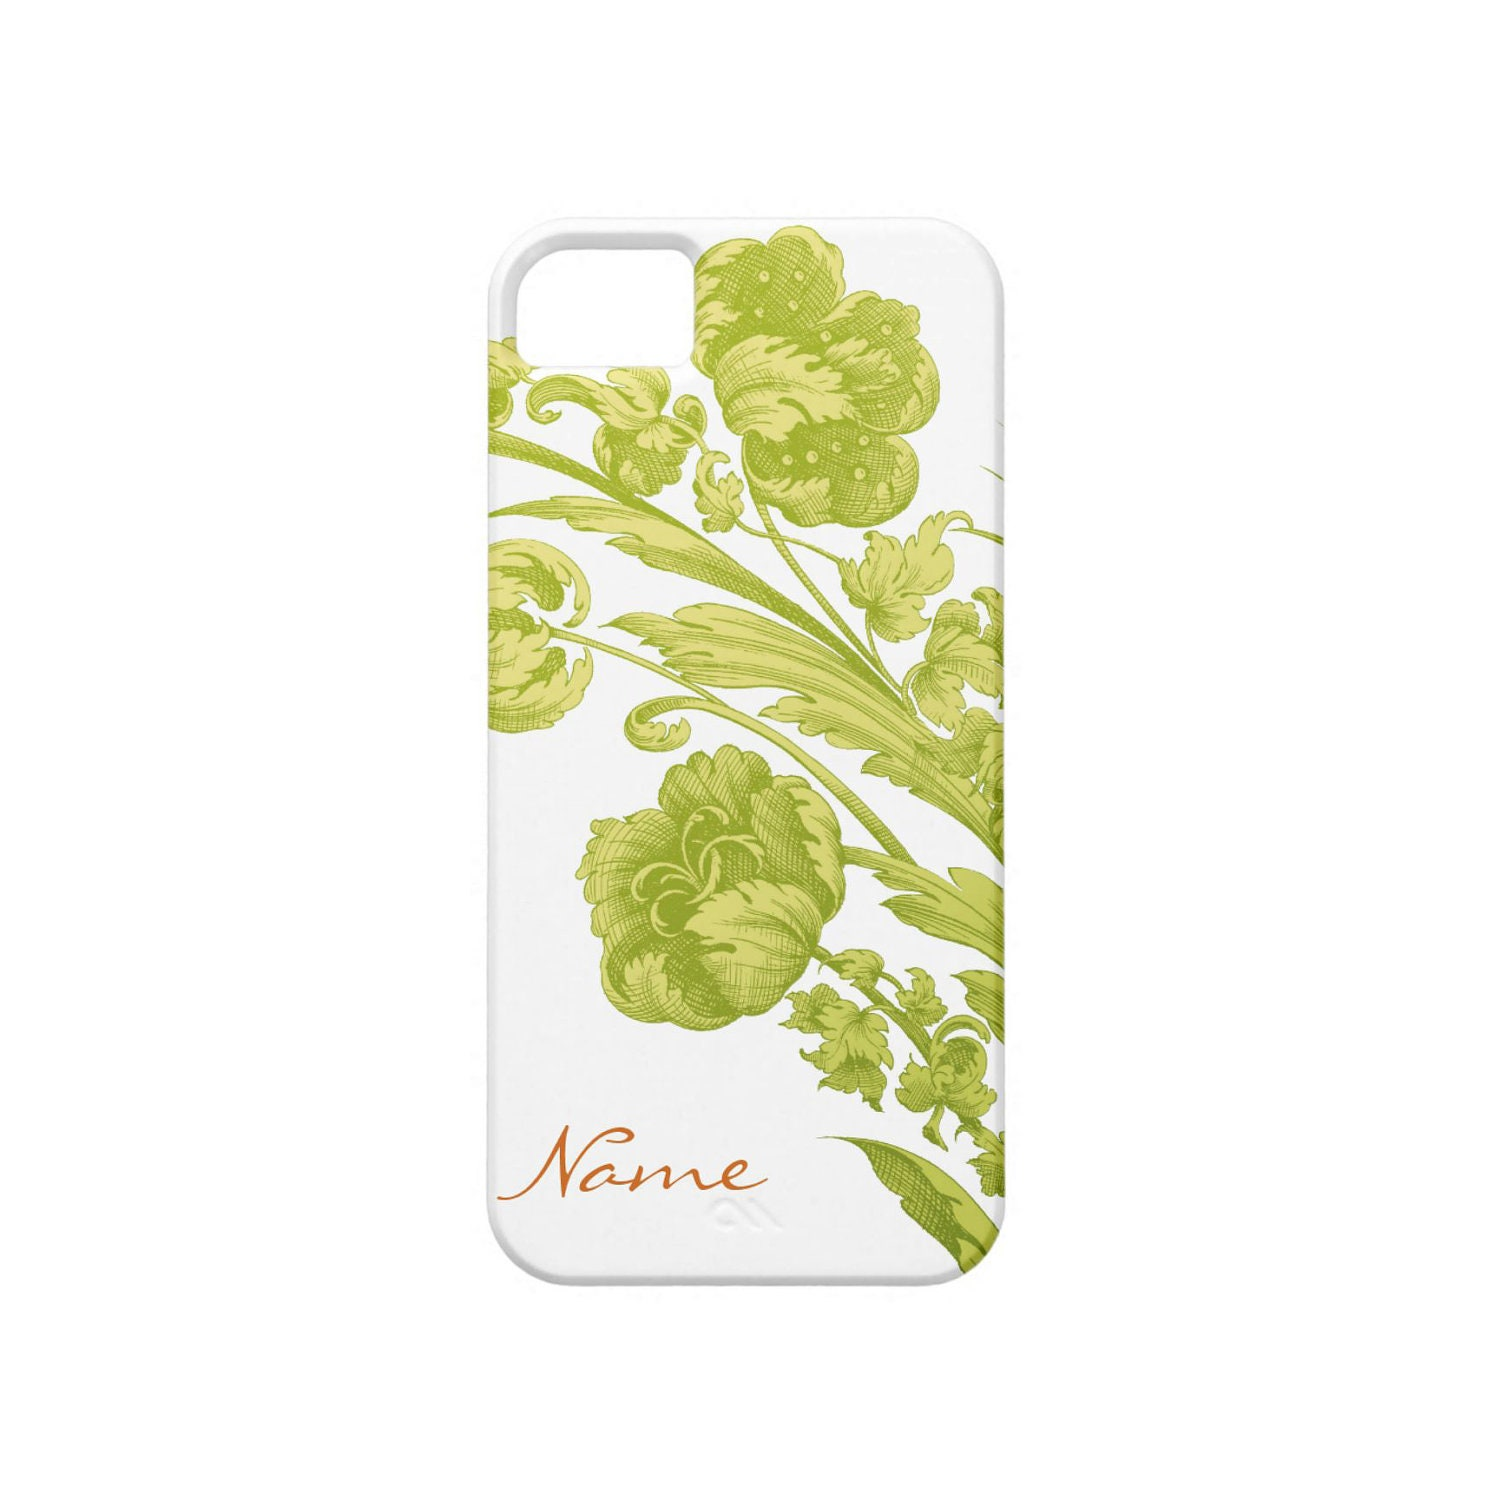 Personalized iPhone 5 Case, Flowers in Green and Orange, Customized Cell Phone Case